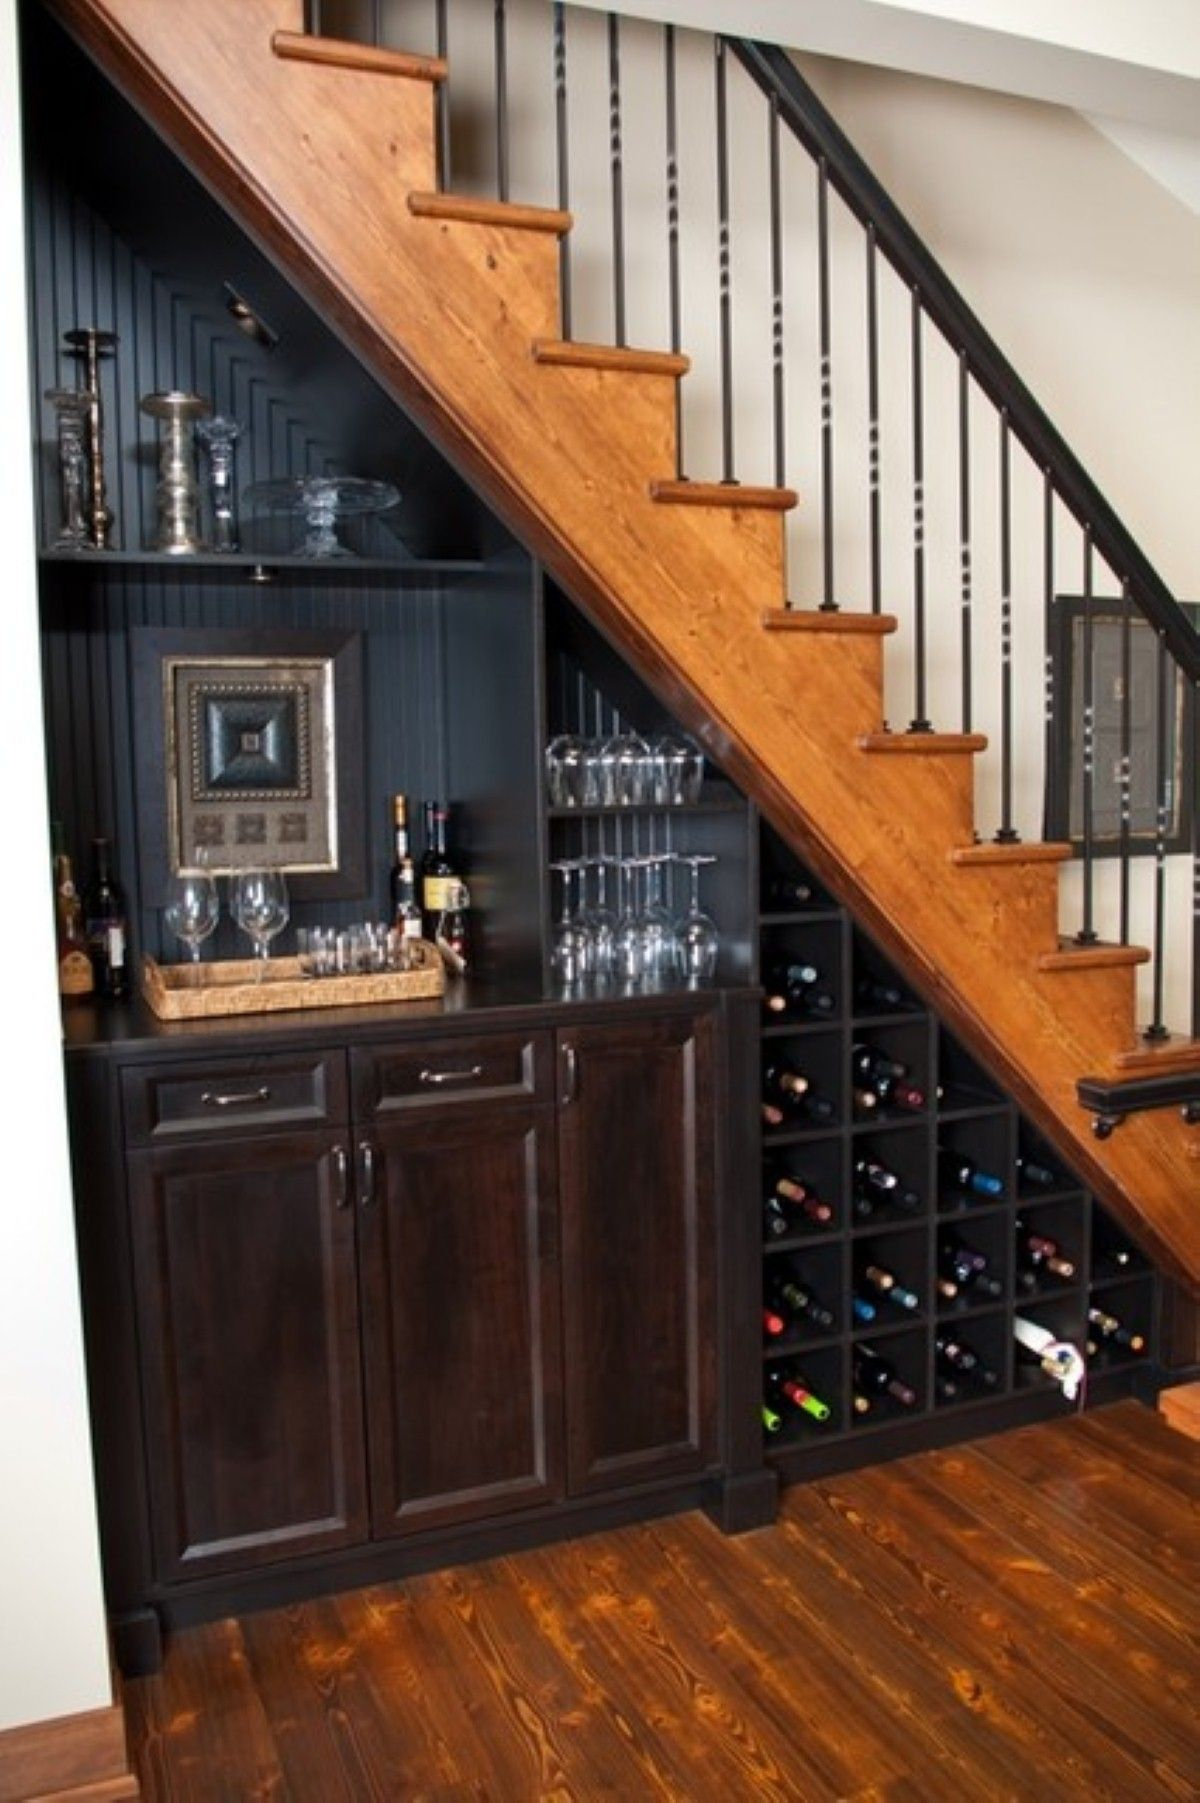 Appealing design ideas of under staircase wine rack with brown